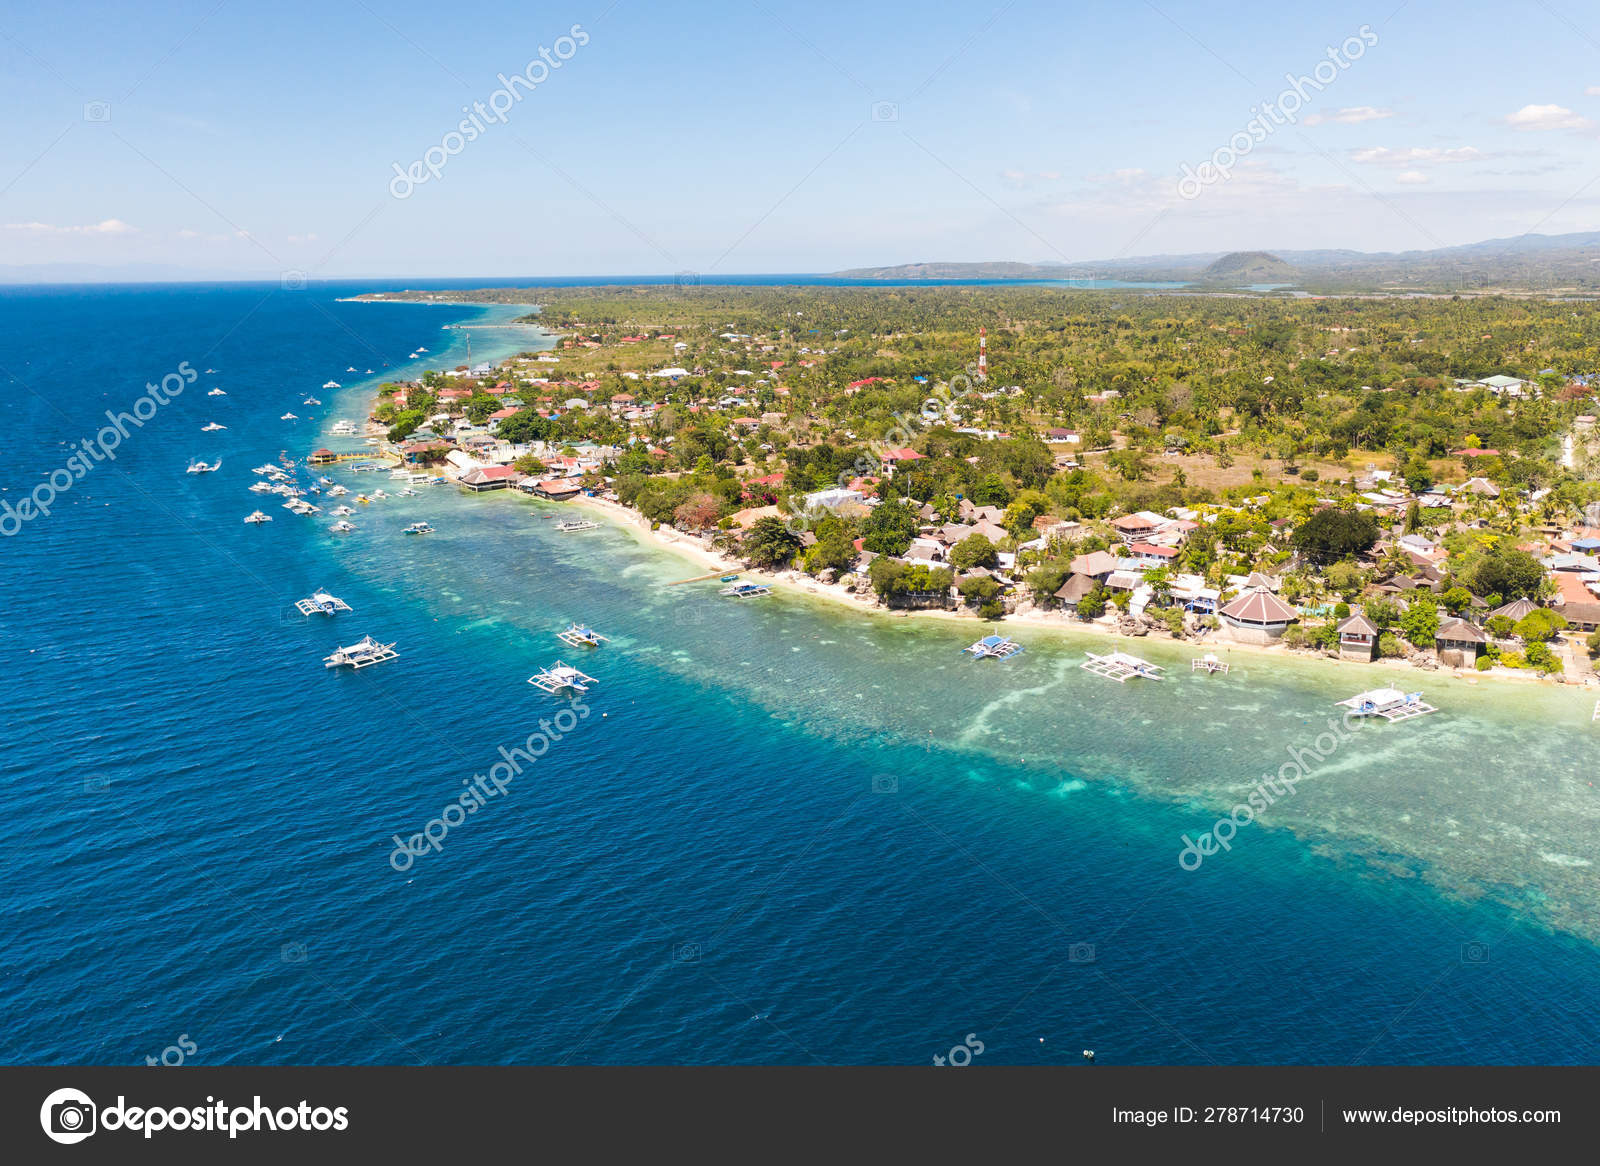 Coast Of Cebu Island Moalboal Philippines Top View